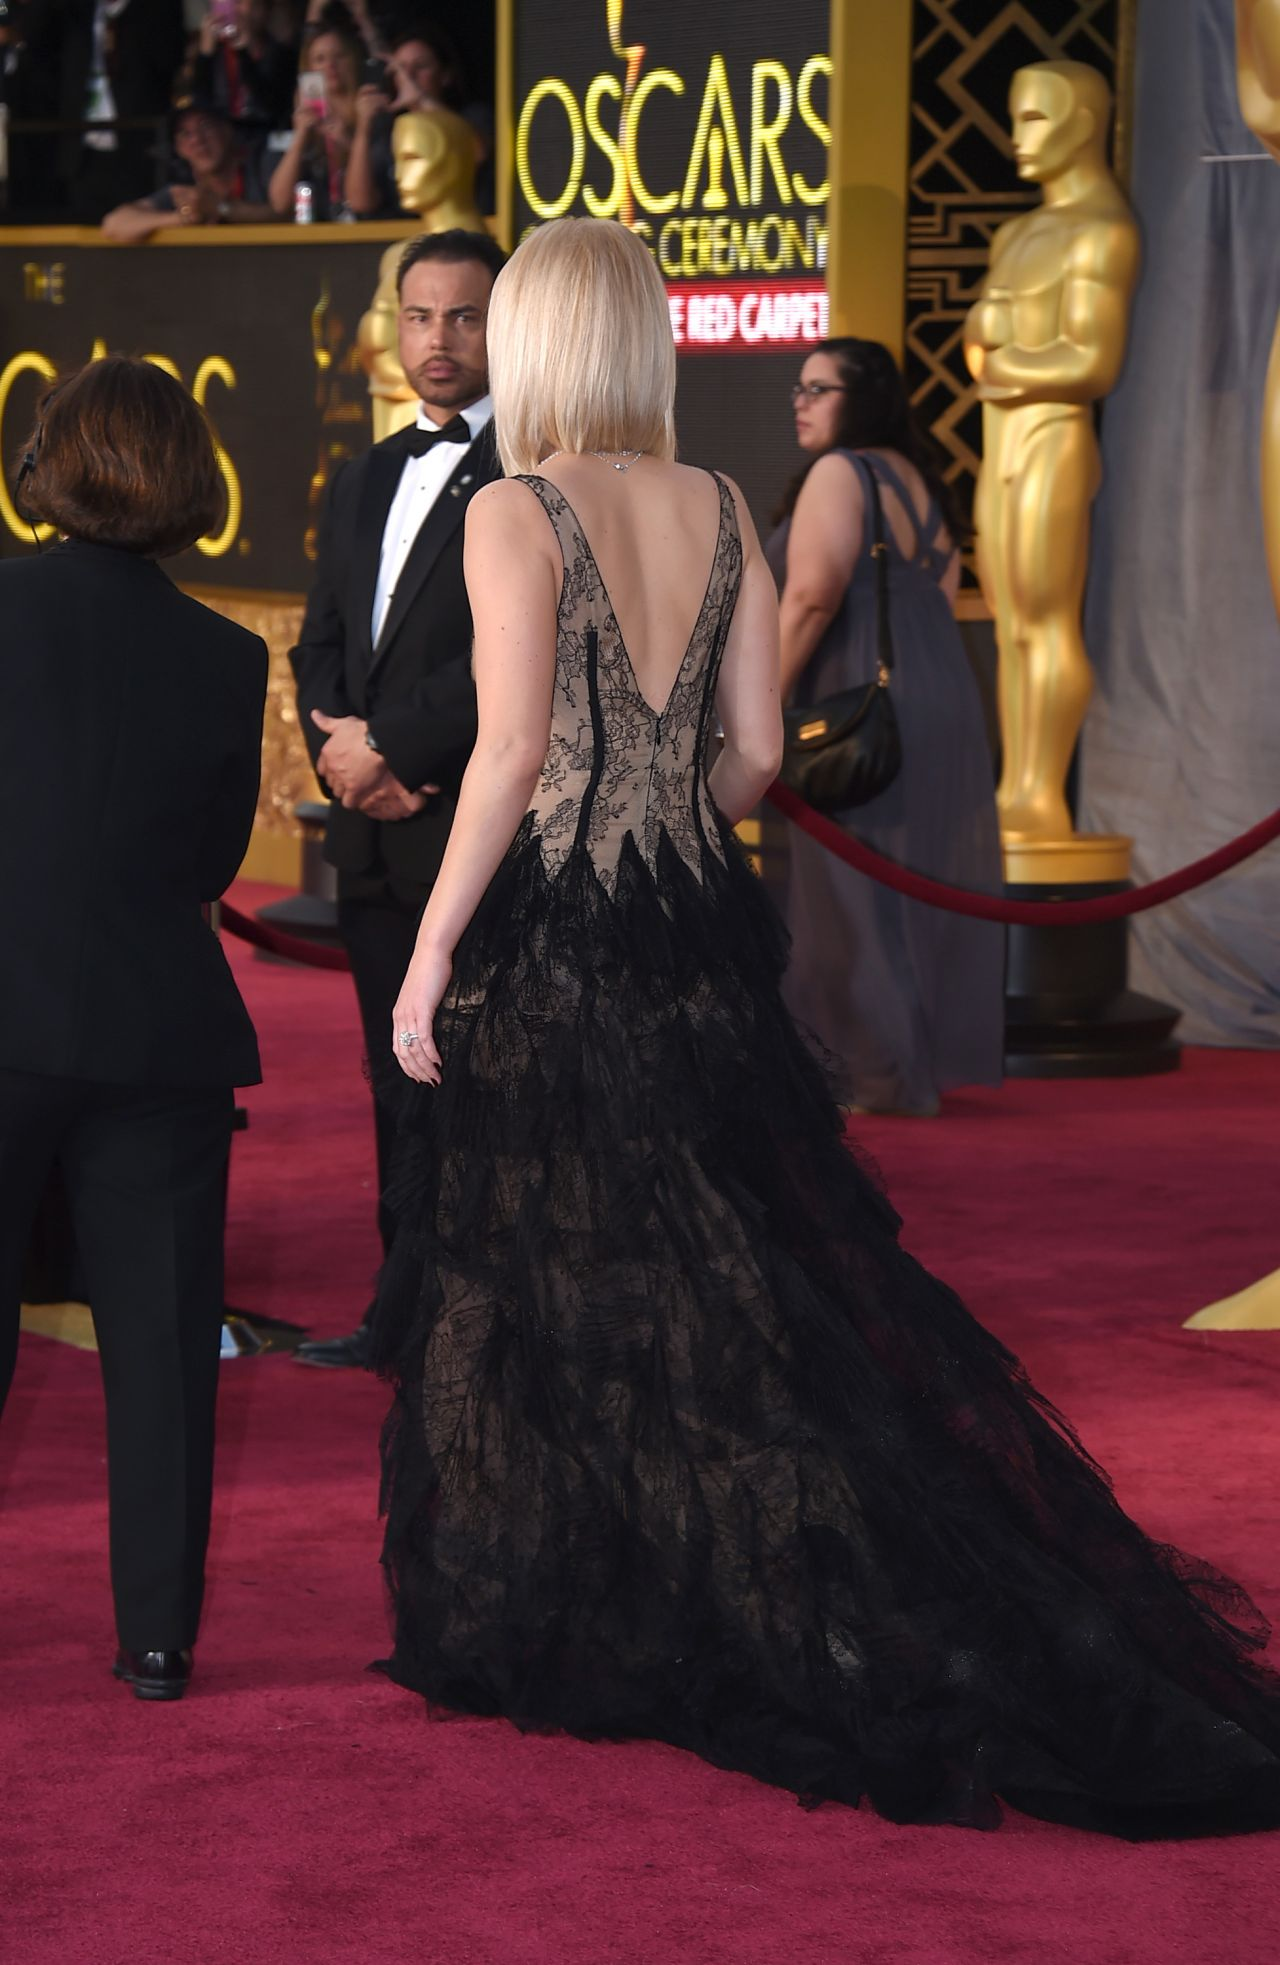 jennifer-lawrence-oscars-2016-in-hollywood-ca-2-28-2016-20